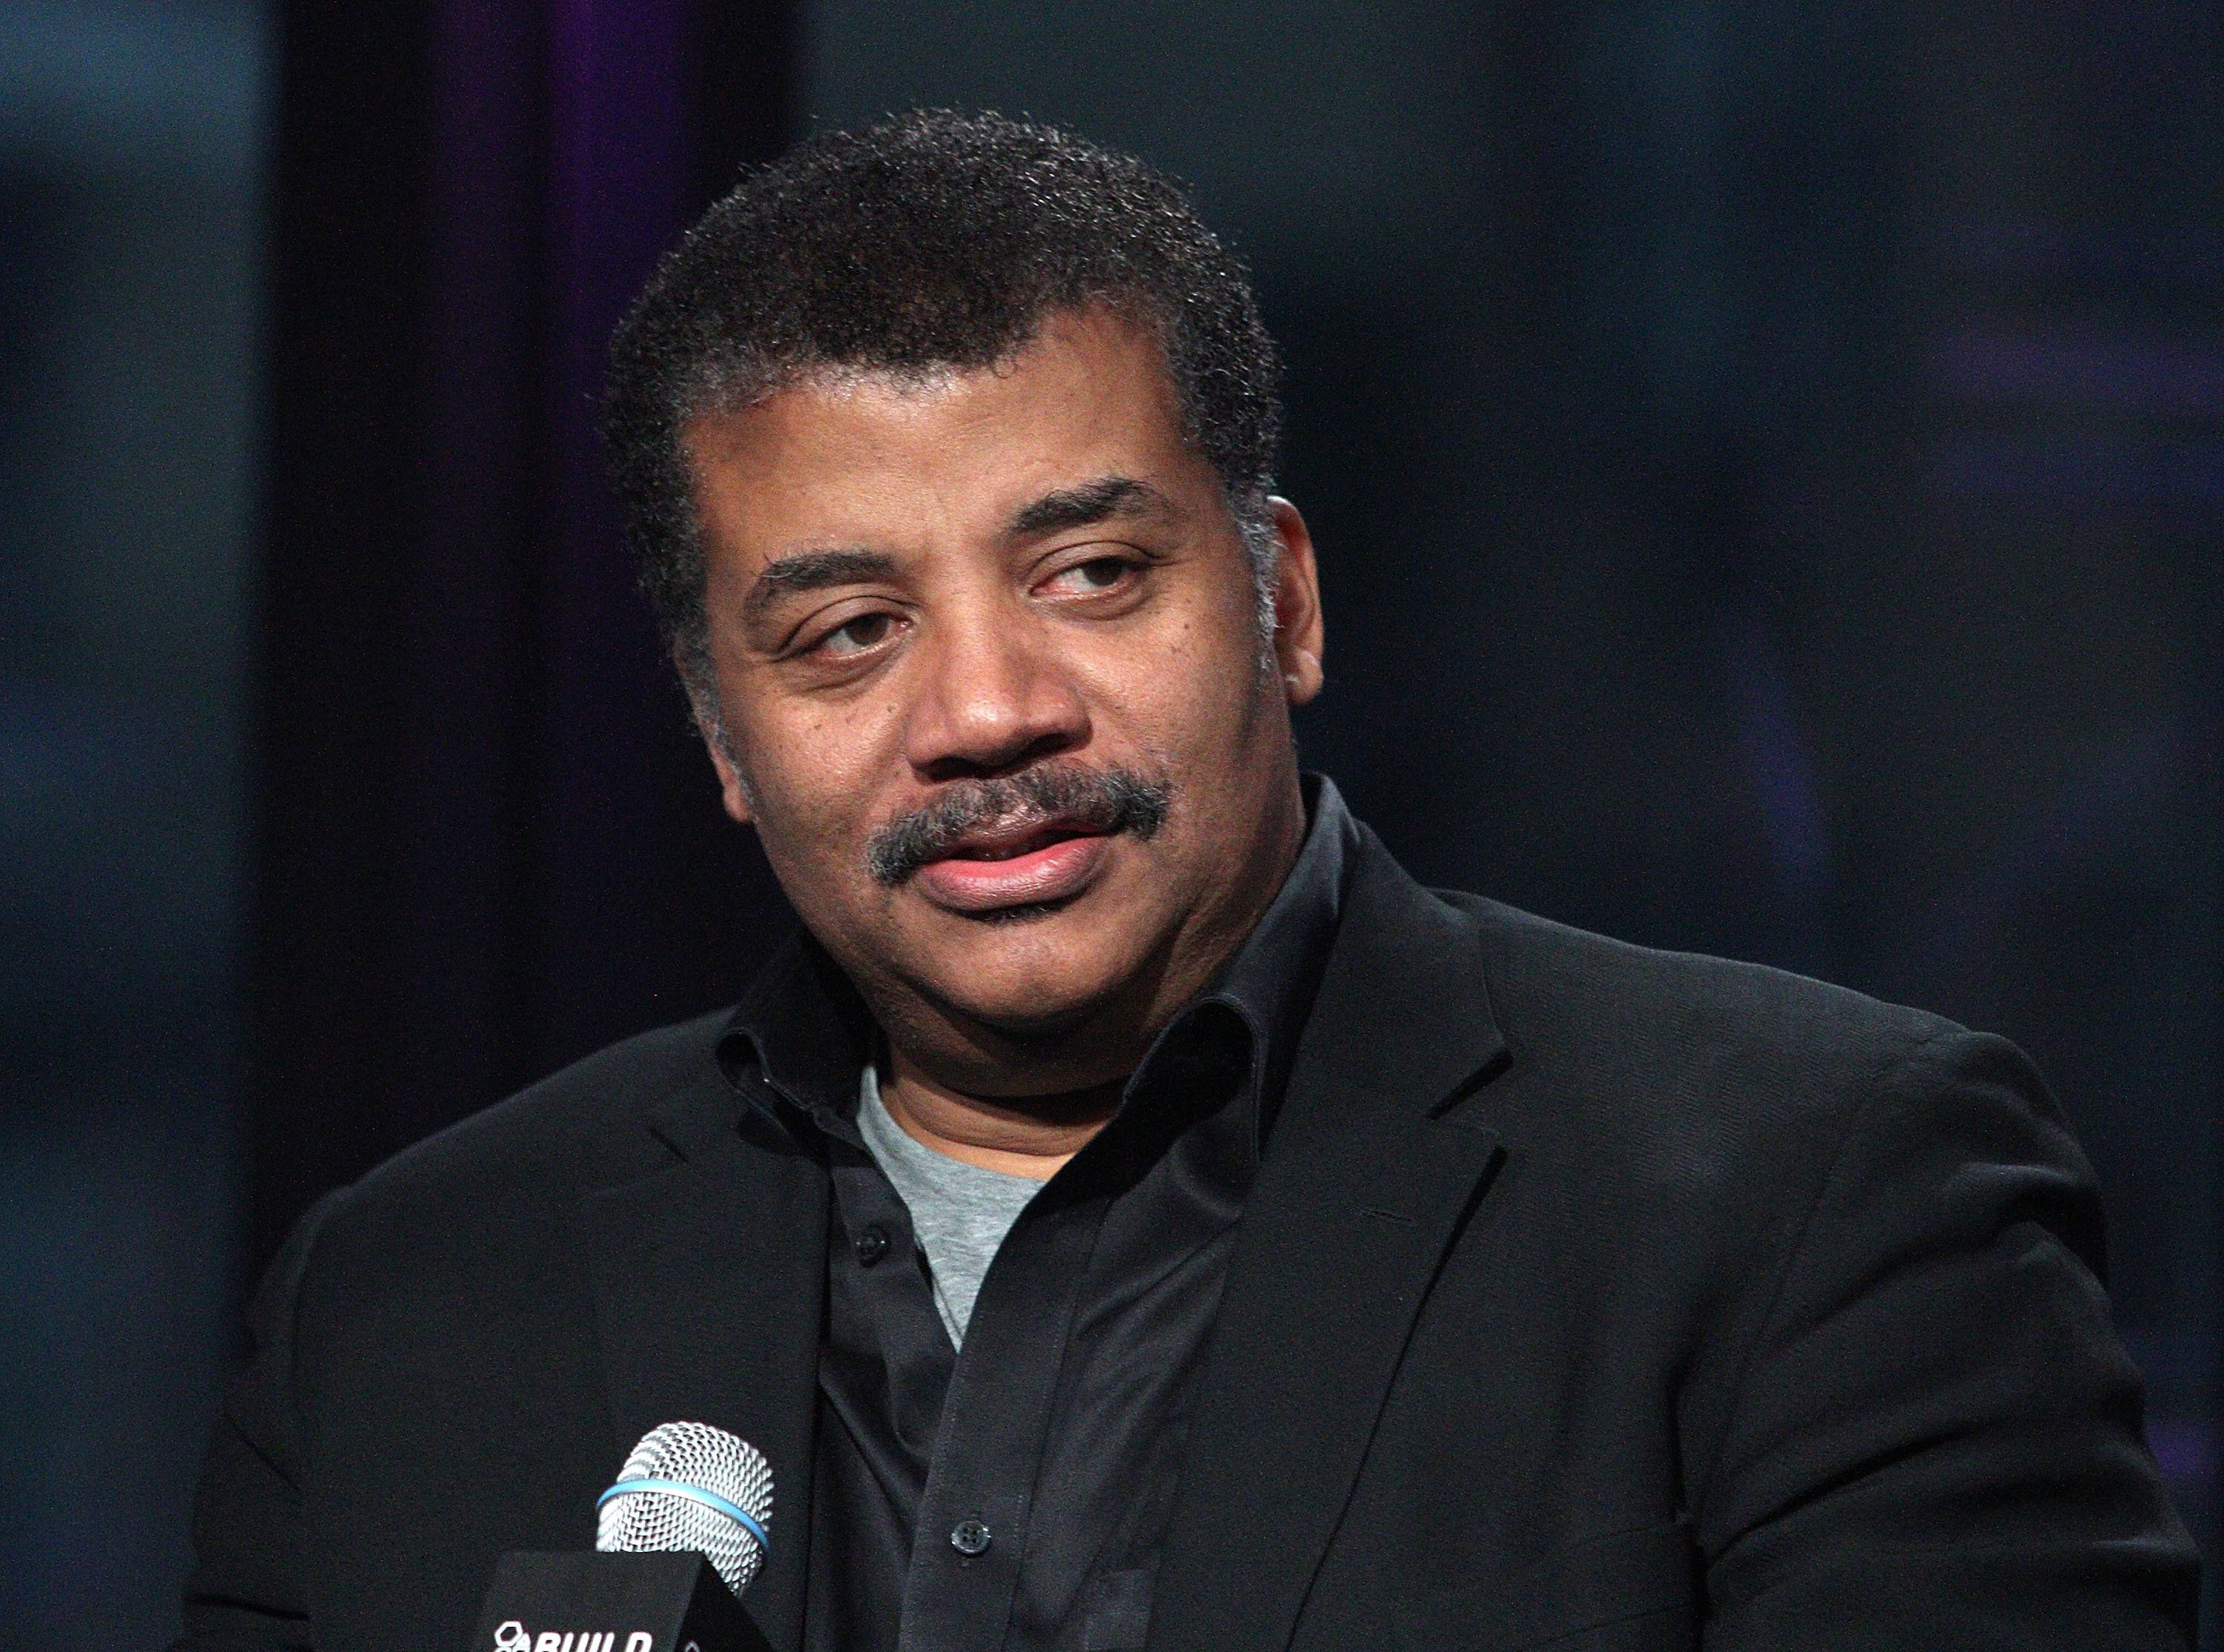 Neil deGrasse Tyson Weighs The Scientific Data For Prayers vs. Guns